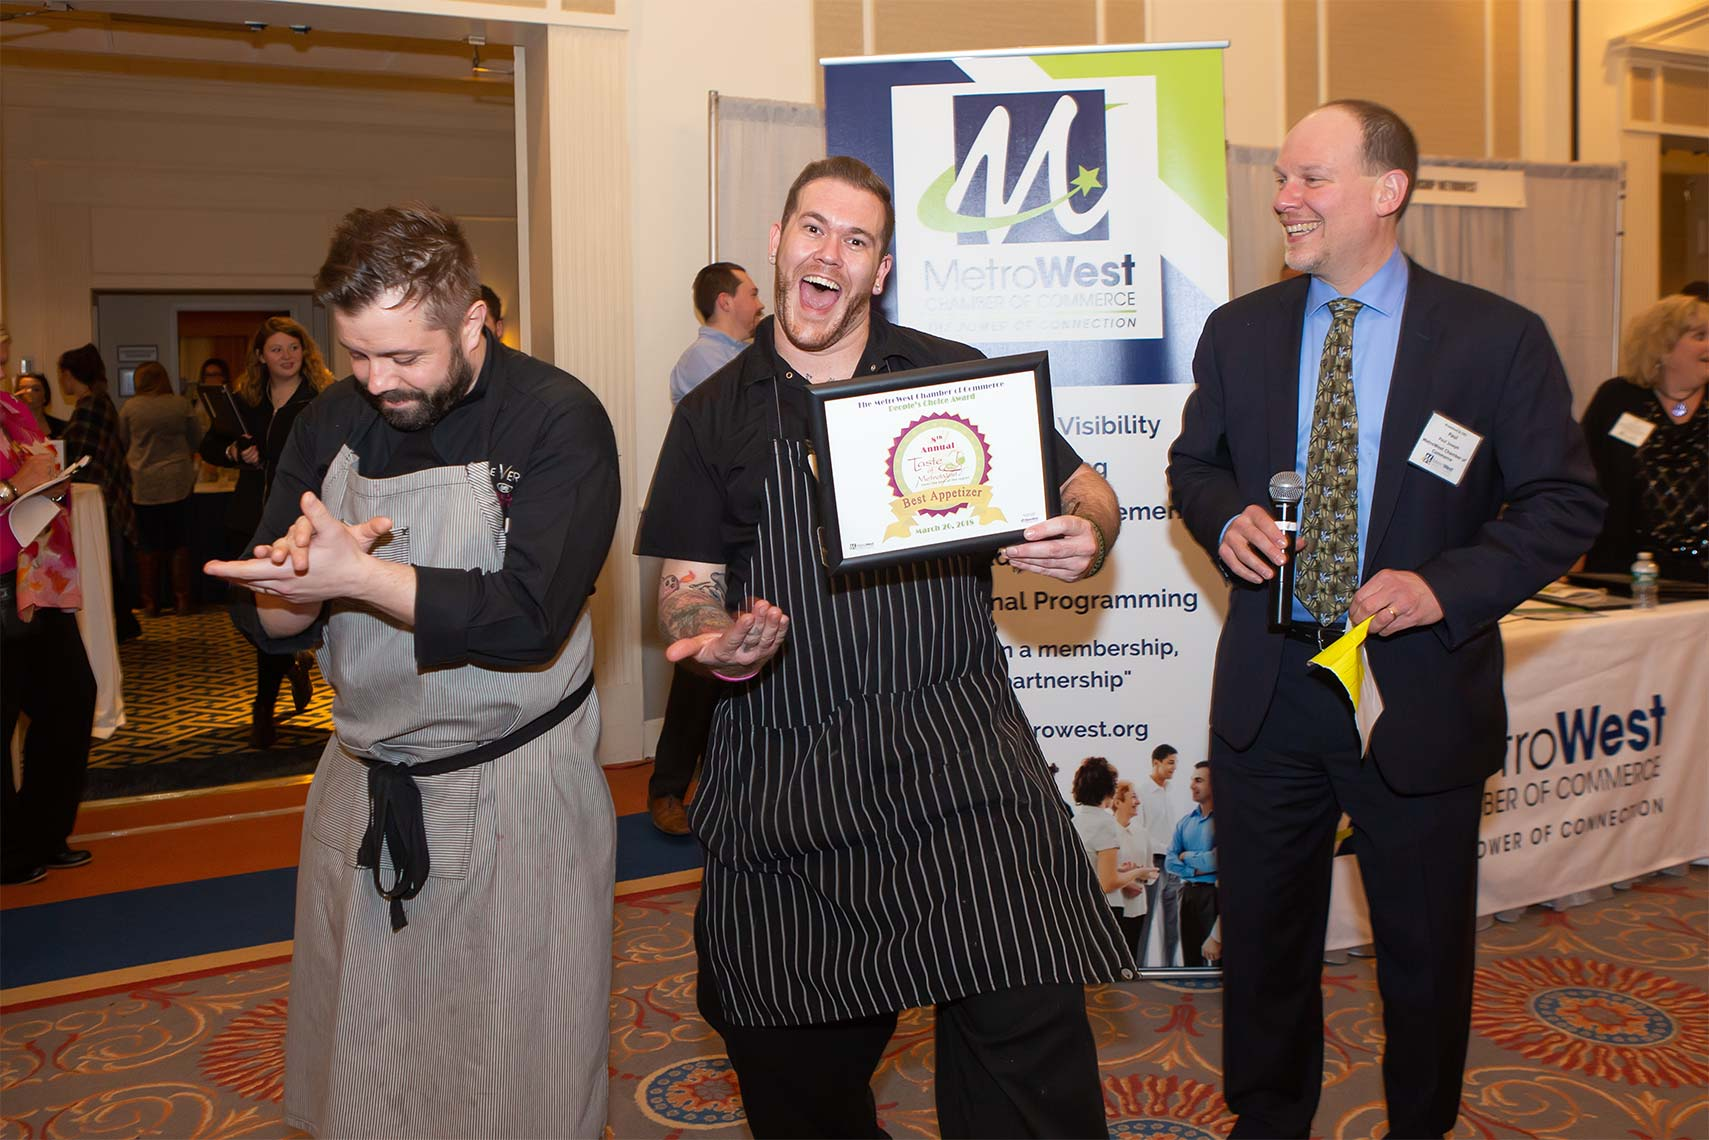 Winner of Best Appetizer at Taste of Metrowest holds award